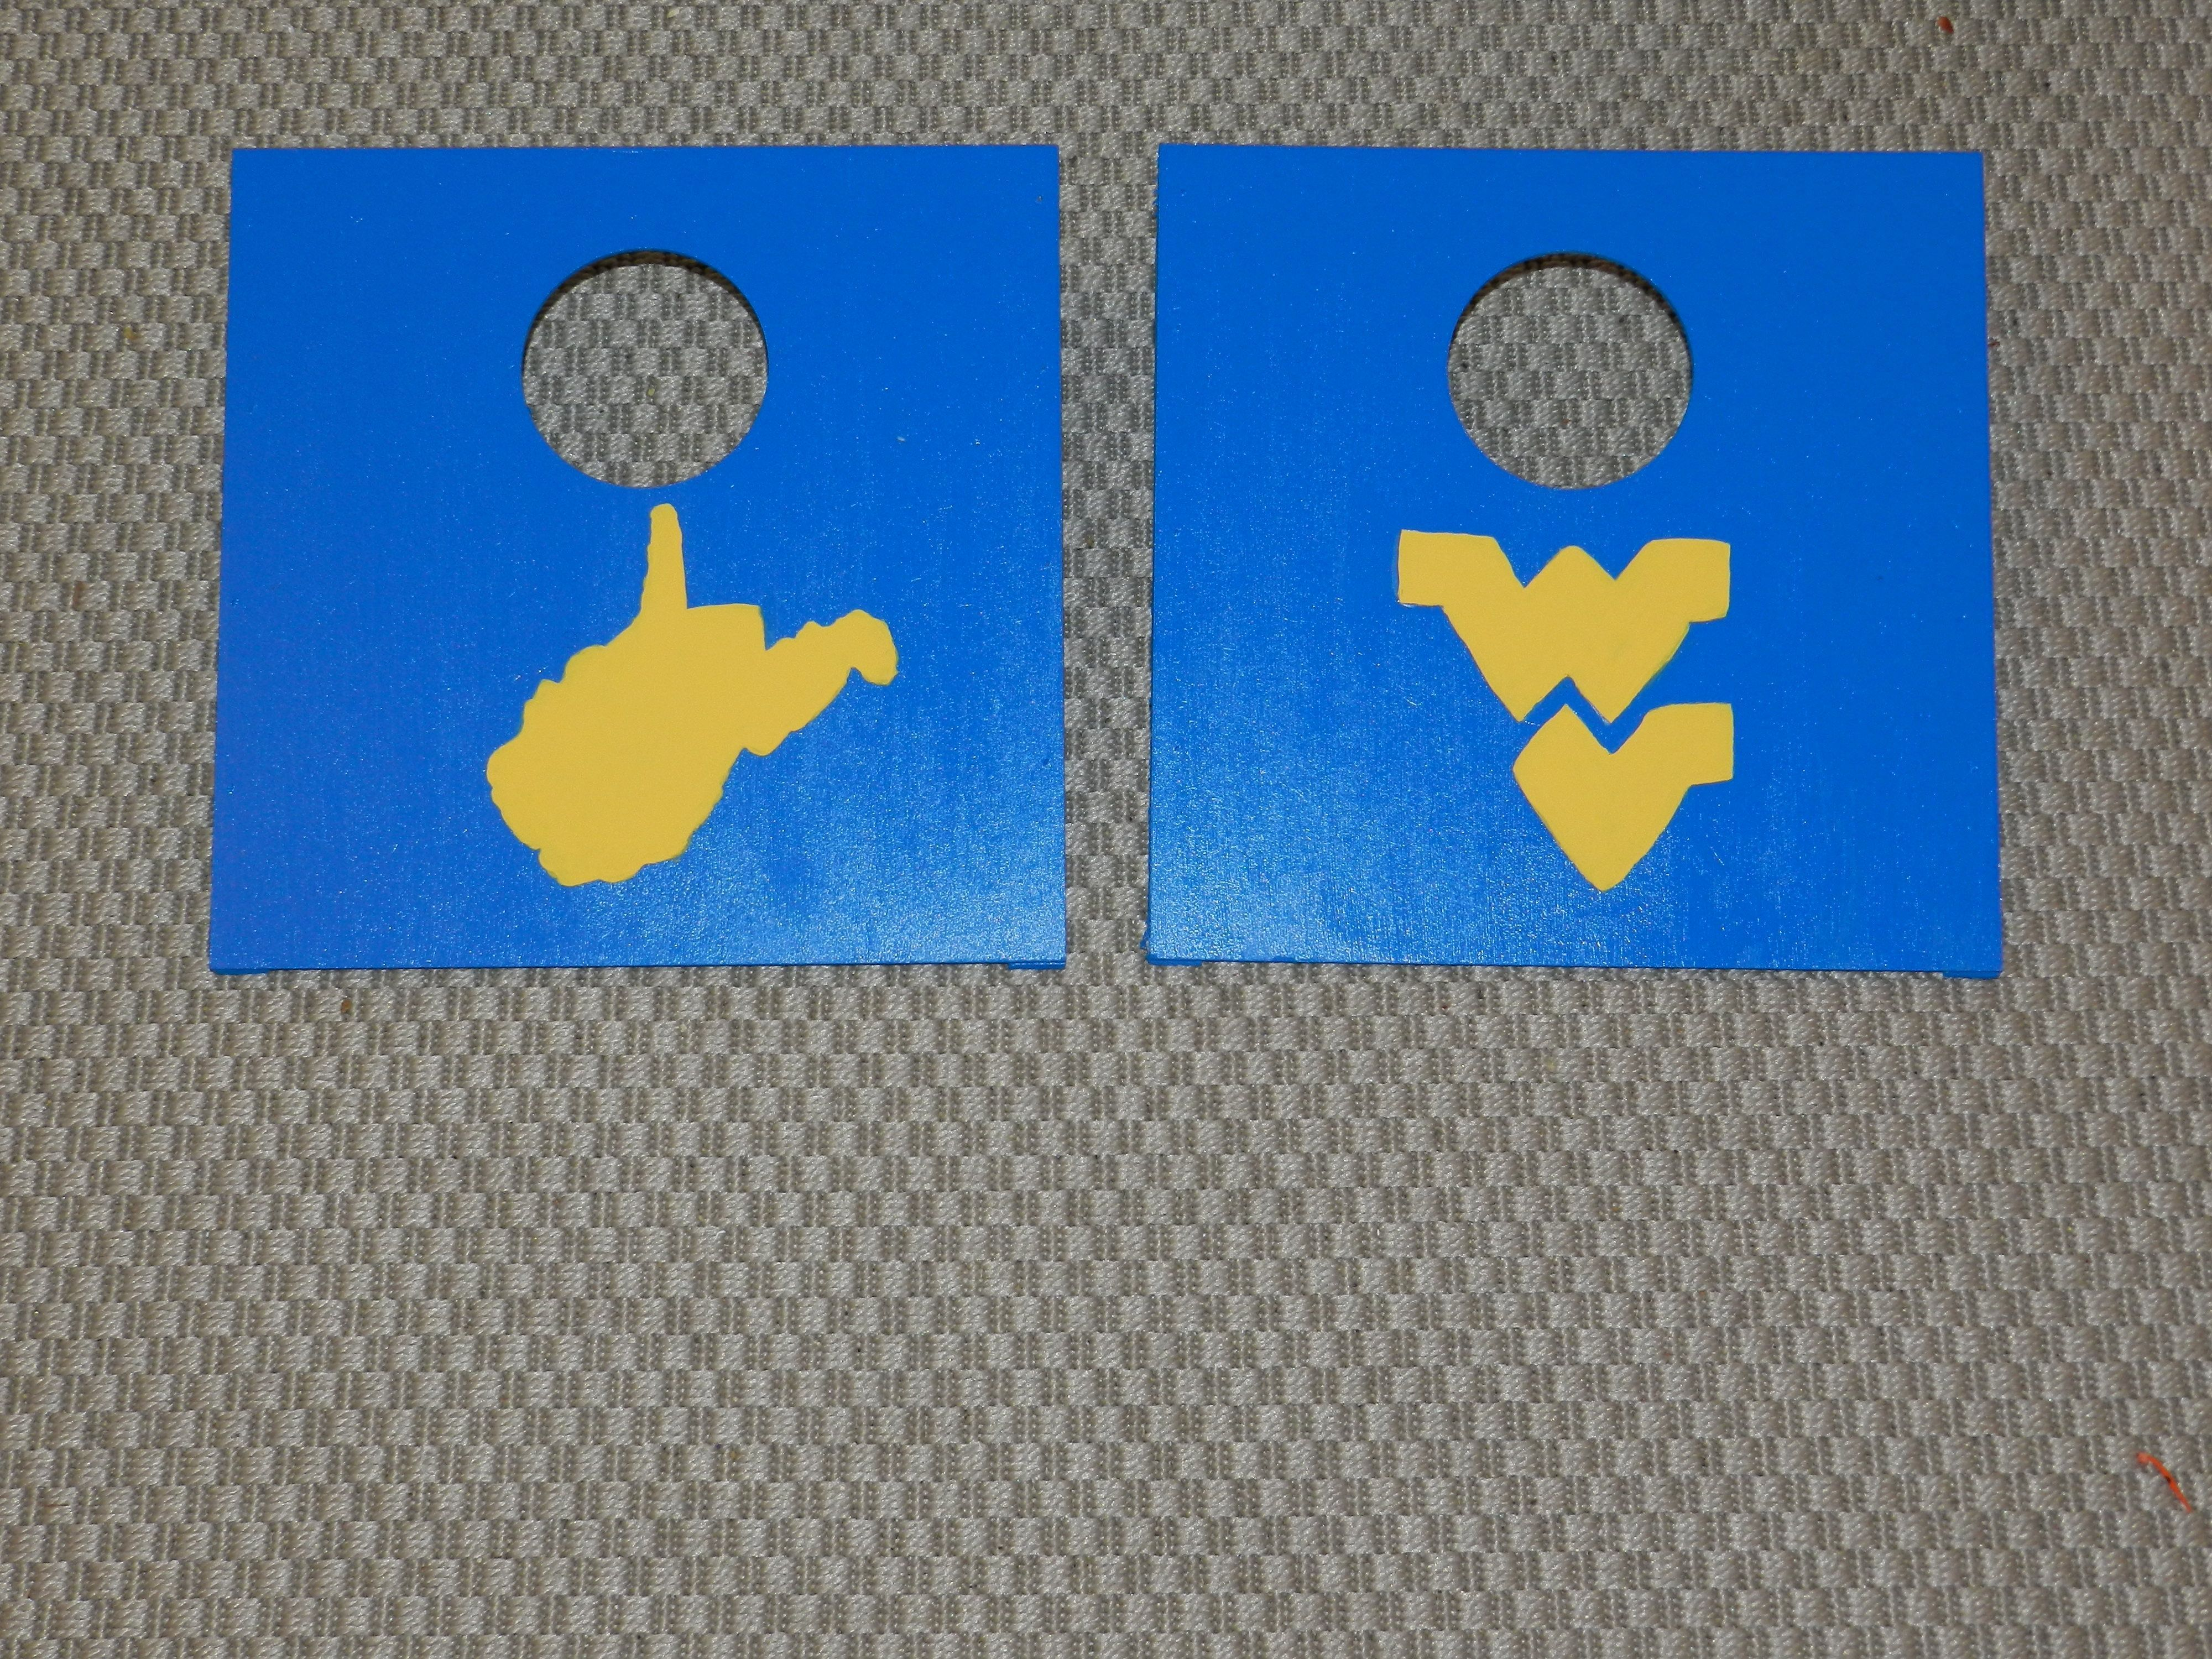 Mini-Cornhole Boards for easy transportation to tailgates #WVU #Mountaineers #wvumountaineers Mini-Cornhole Boards for easy transportation to tailgates #WVU #Mountaineers #wvumountaineers Mini-Cornhole Boards for easy transportation to tailgates #WVU #Mountaineers #wvumountaineers Mini-Cornhole Boards for easy transportation to tailgates #WVU #Mountaineers #wvumountaineers